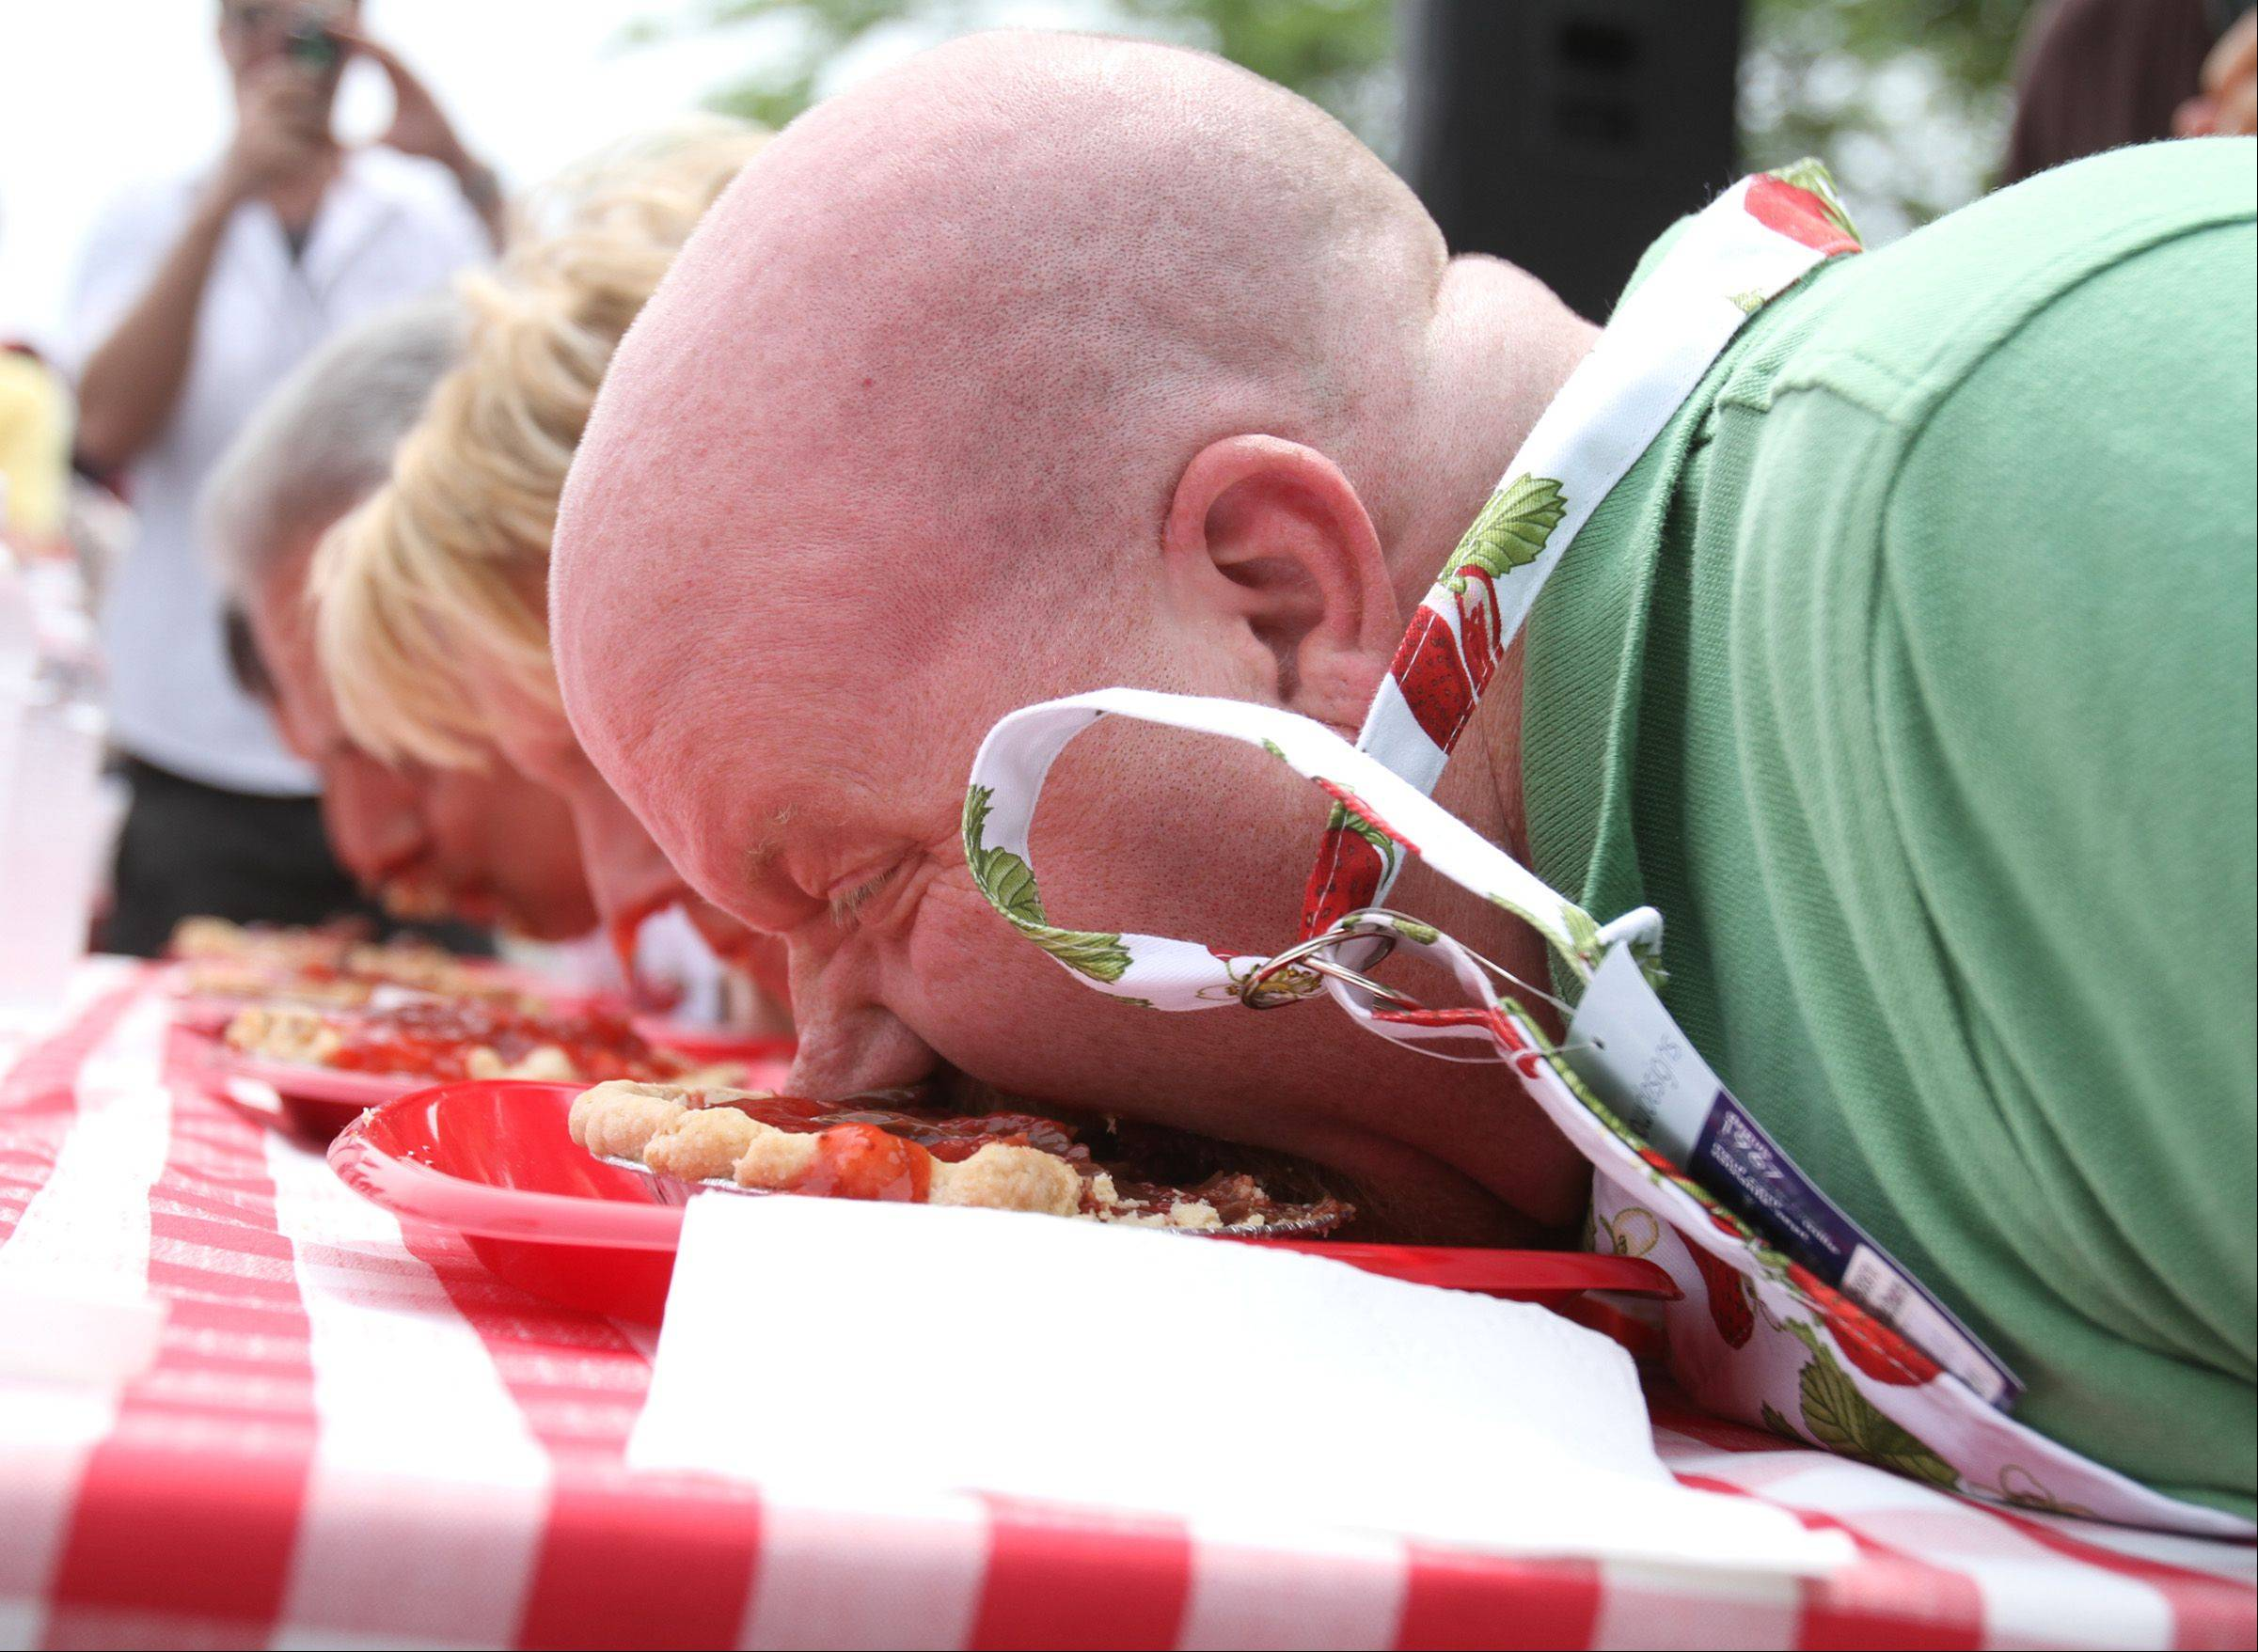 The pie-eating contest is always a sight to behold.